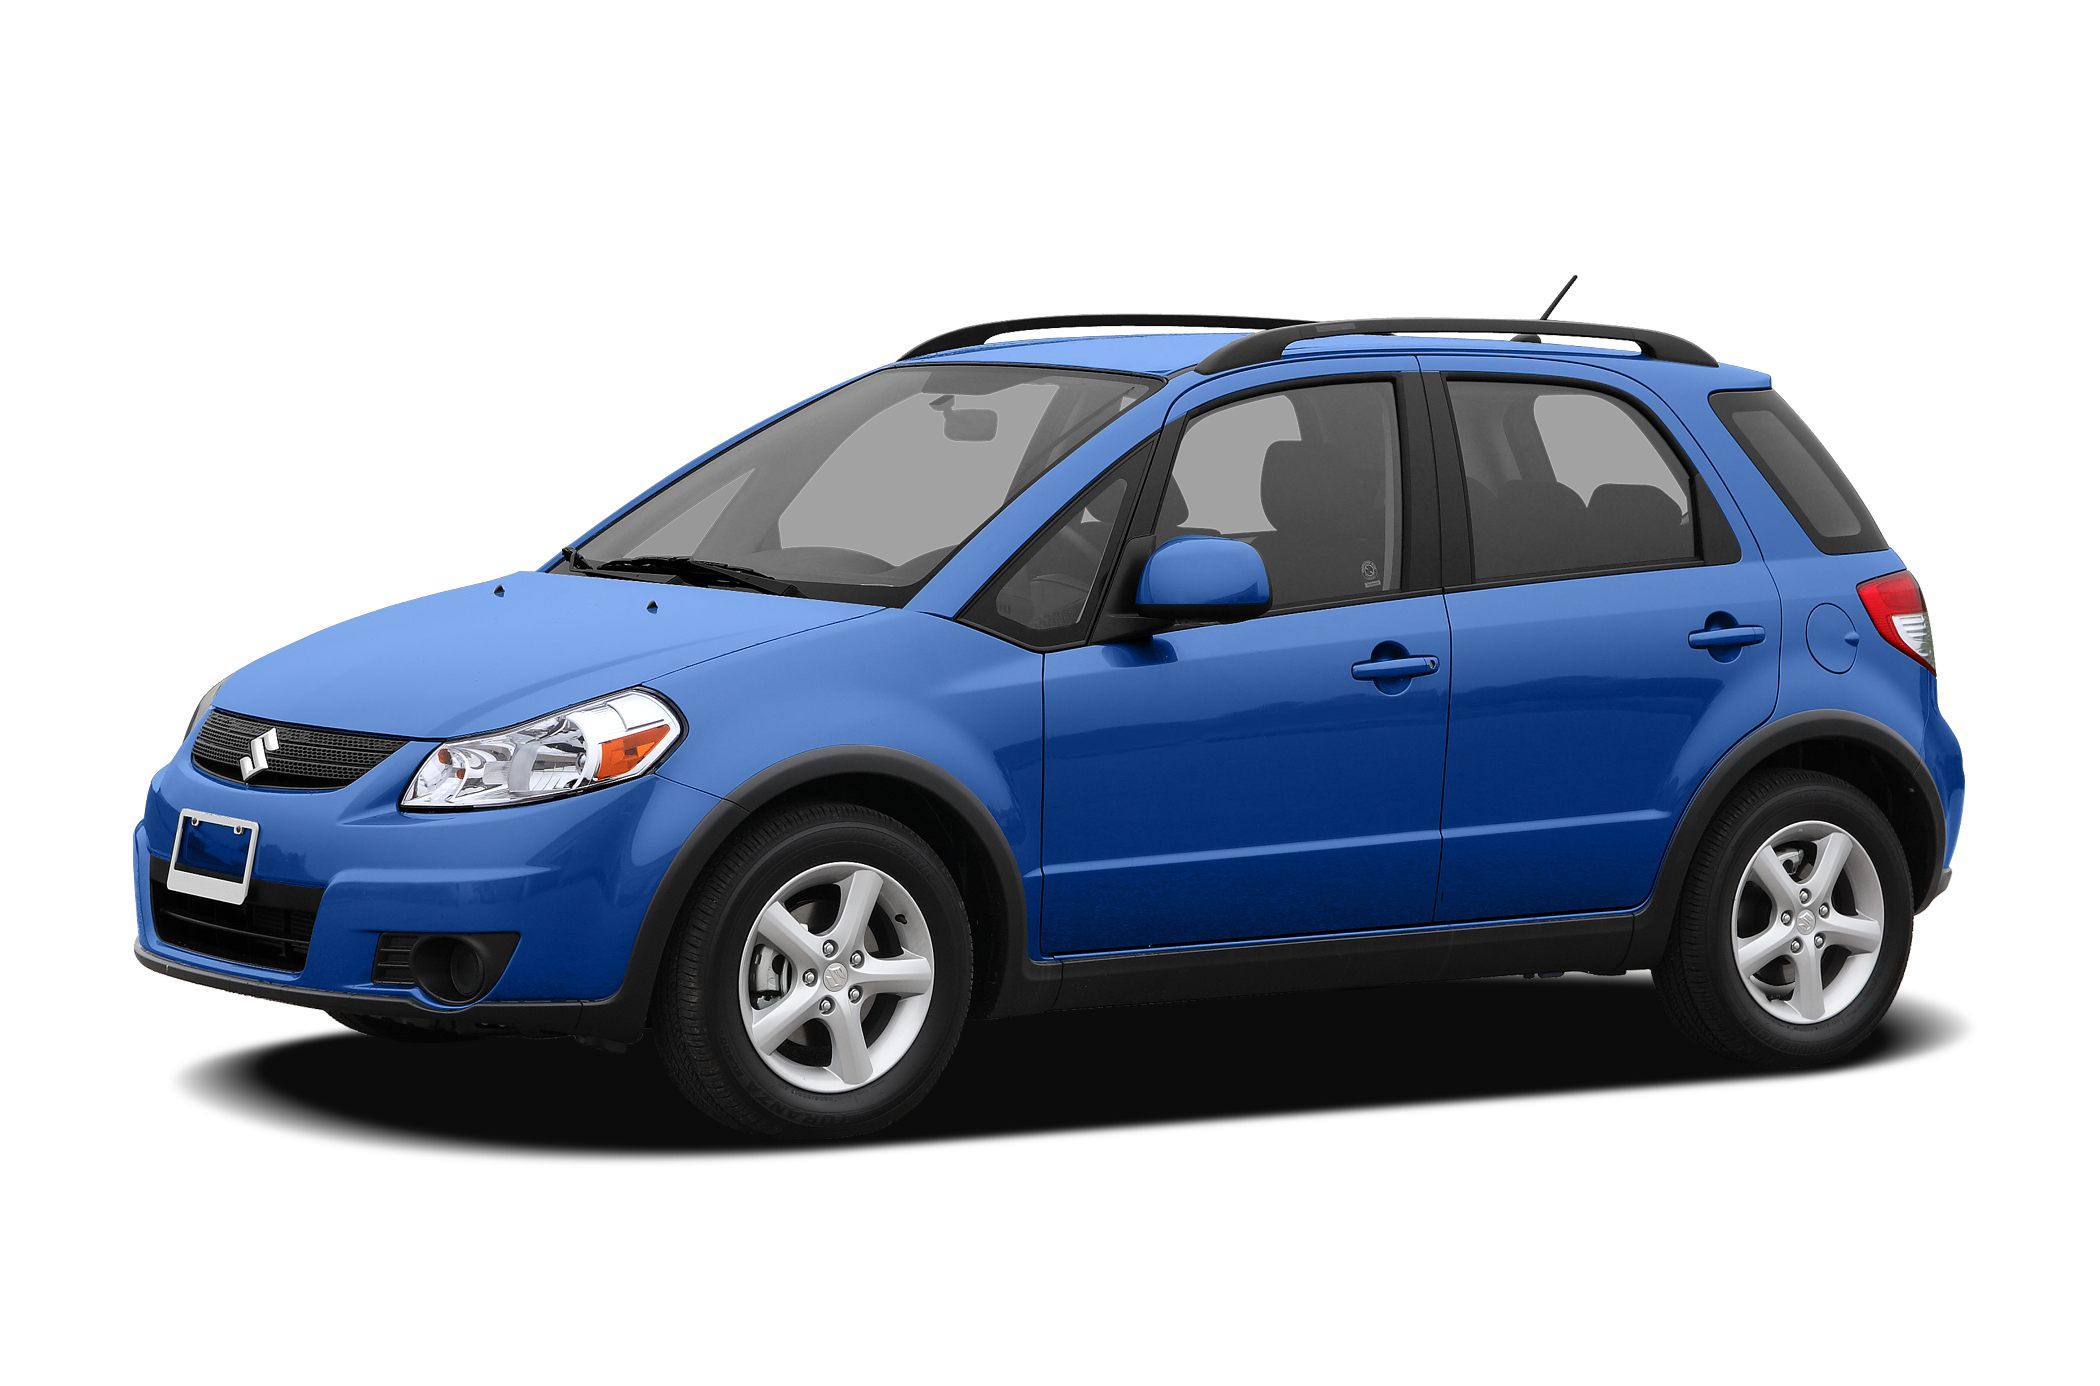 2007 Suzuki SX4 Hatchback for sale in Englewood for $6,999 with 95,210 miles